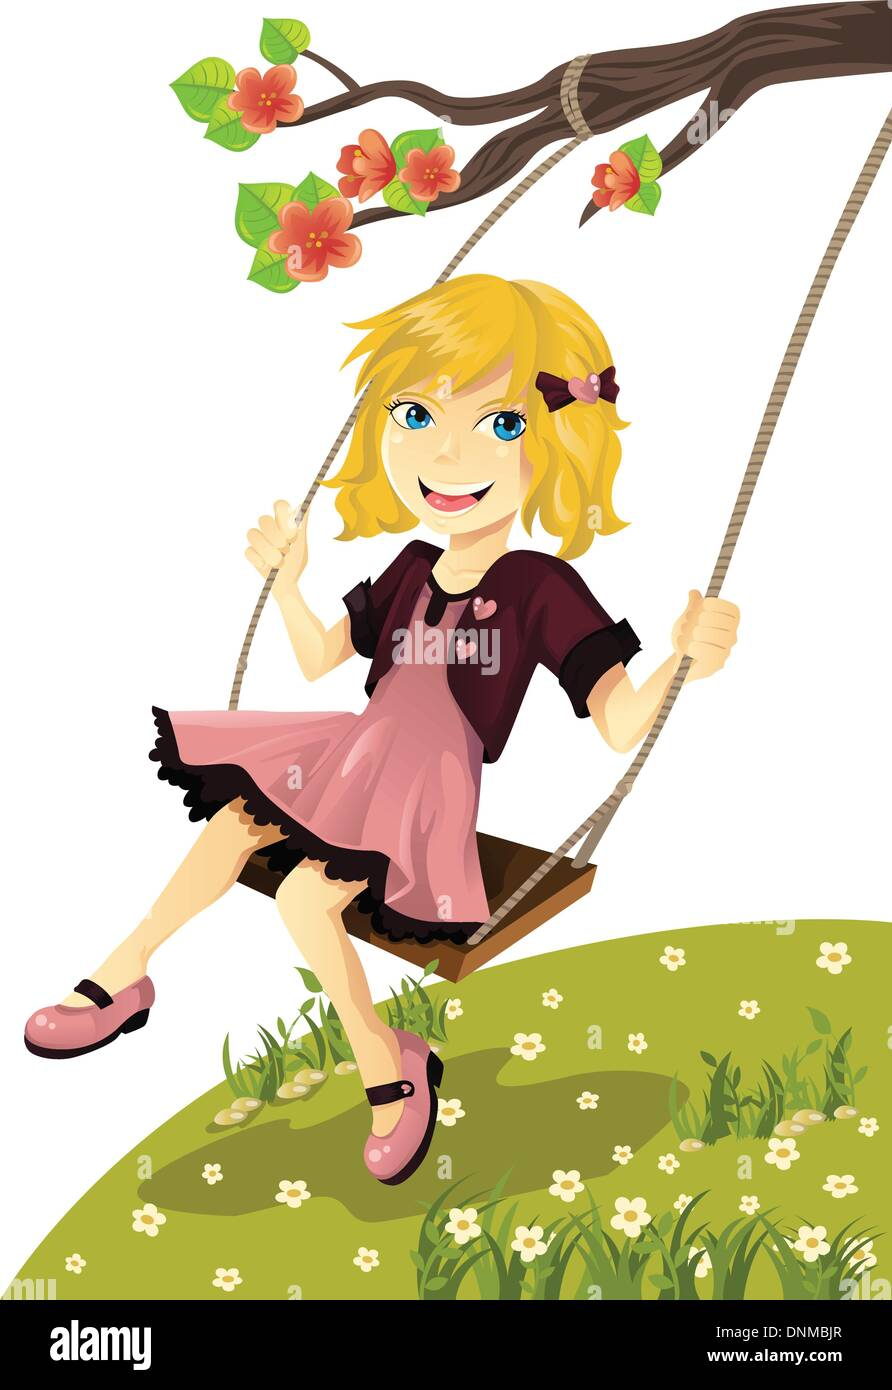 A vector illustration of a cute girl on a swing outside - Stock Vector